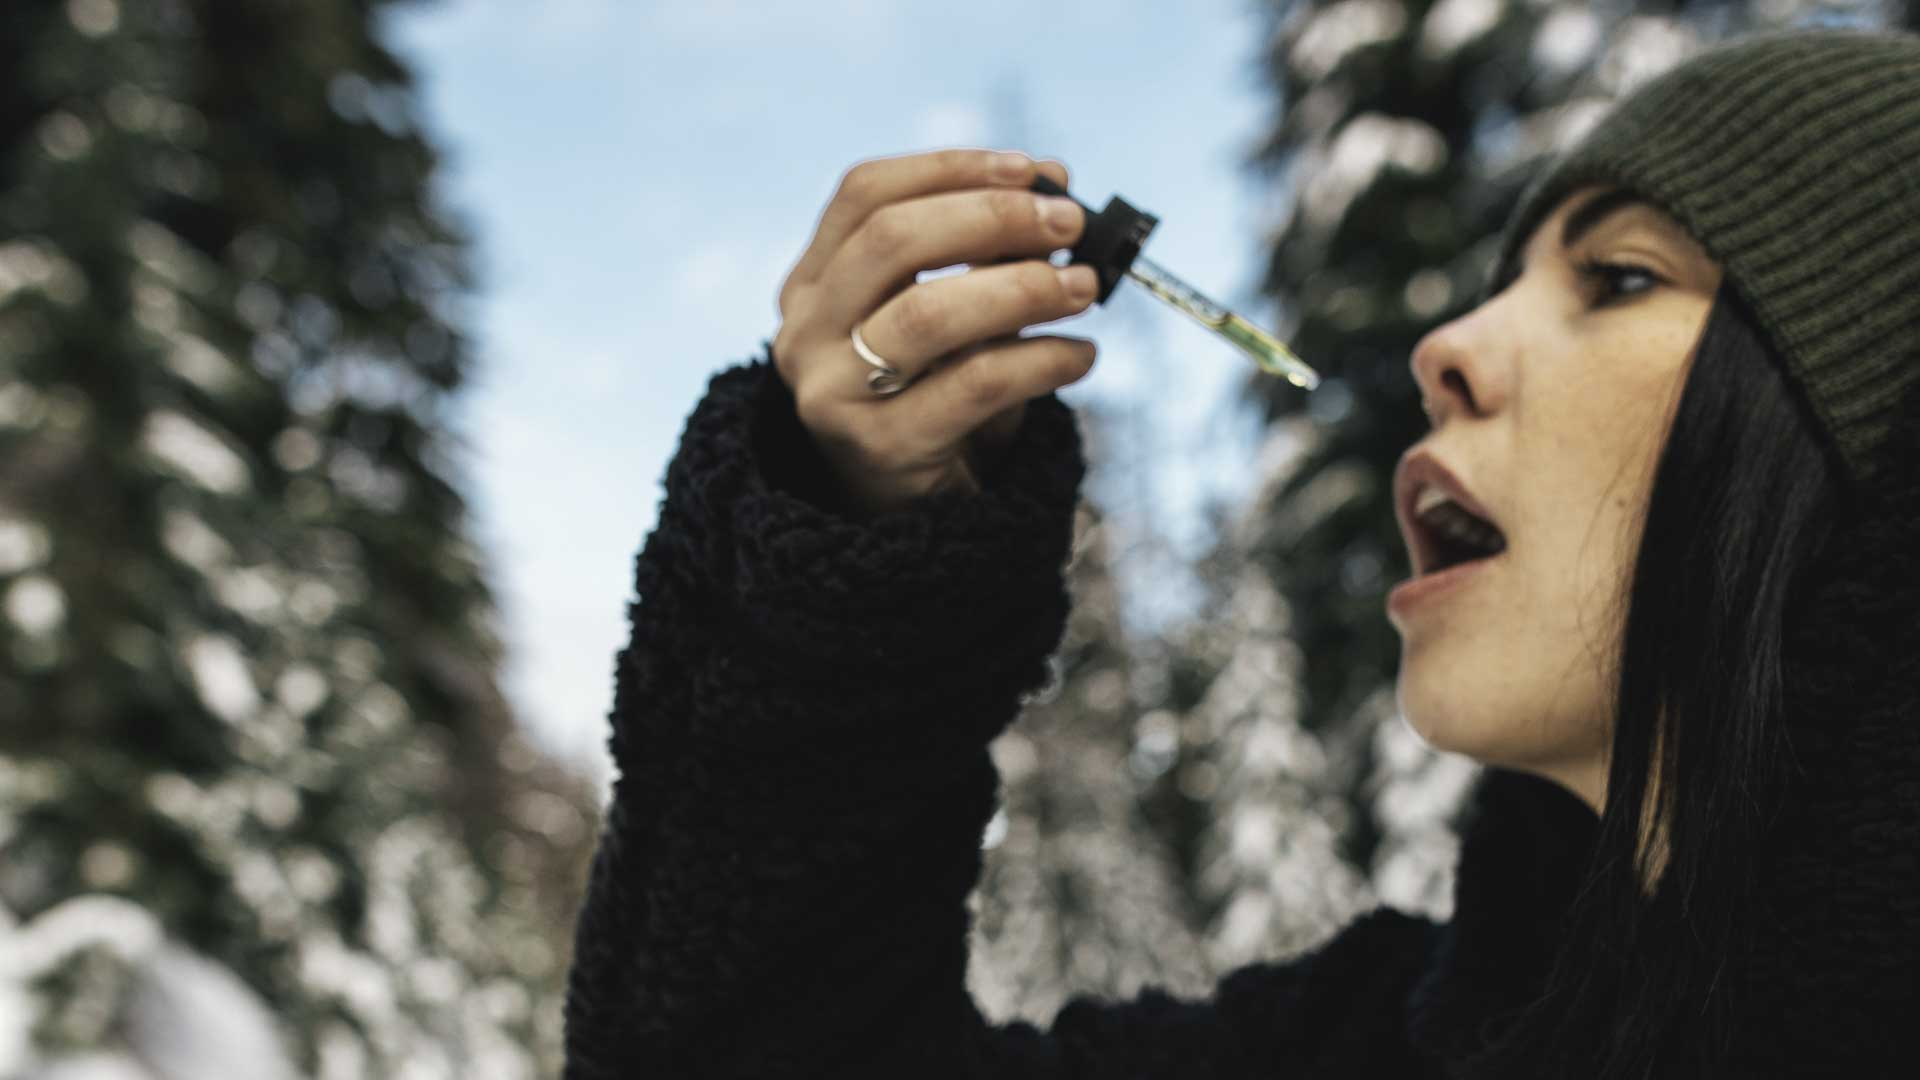 woman taking cbd from a dropper in a snow background